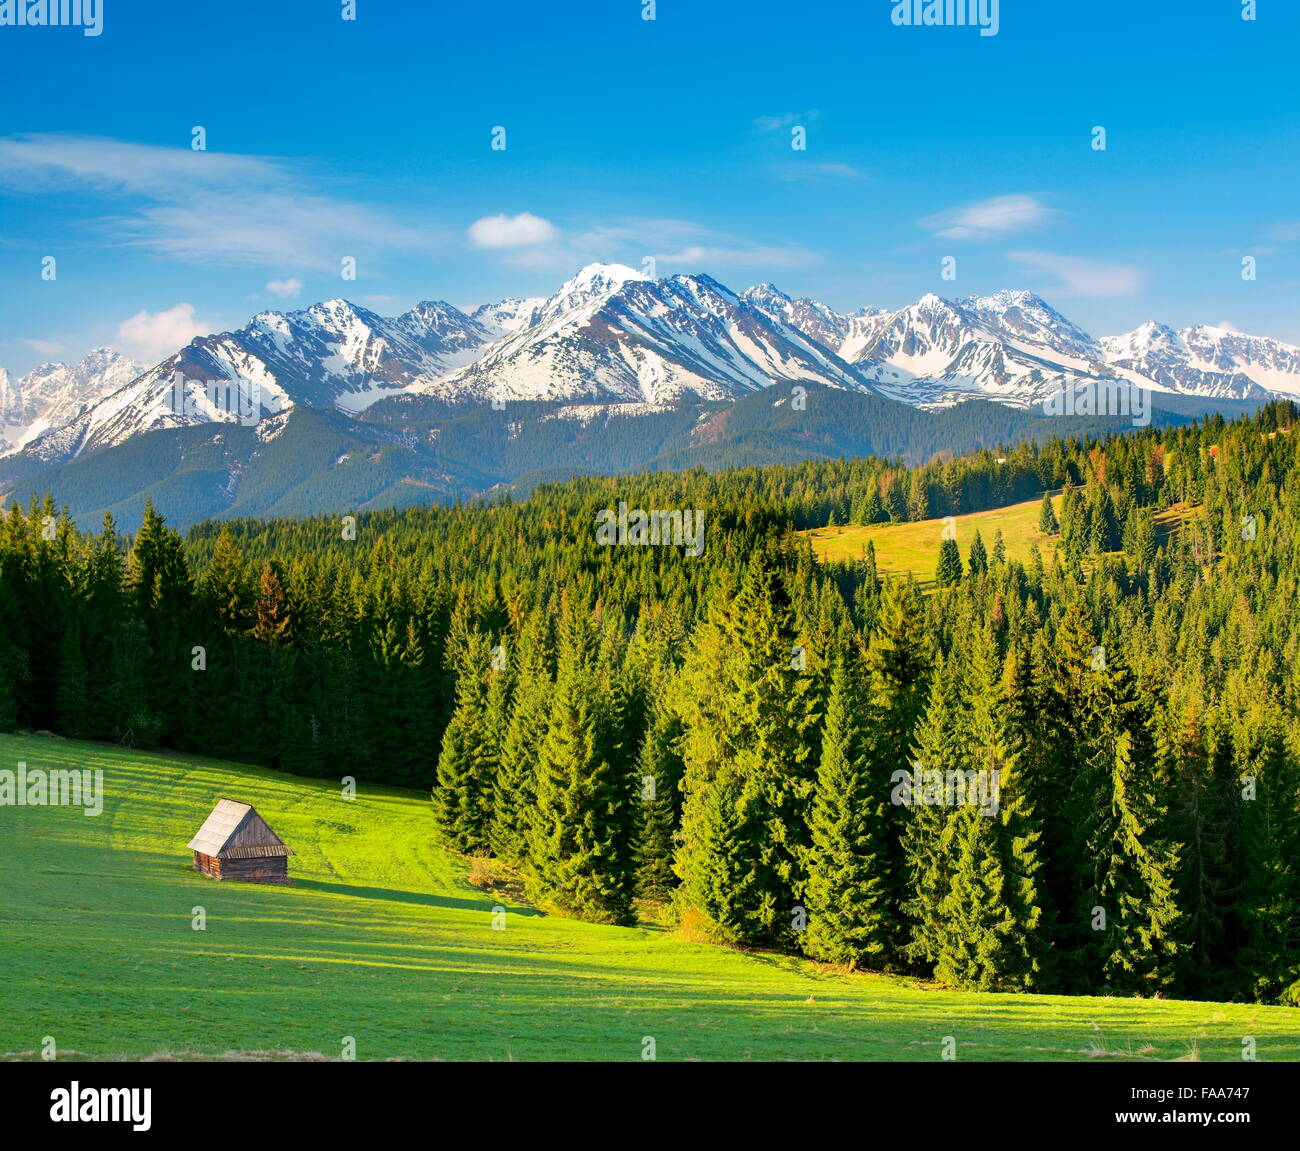 Szymkowka Glade,Tatra Mountains, Poland - Stock Image